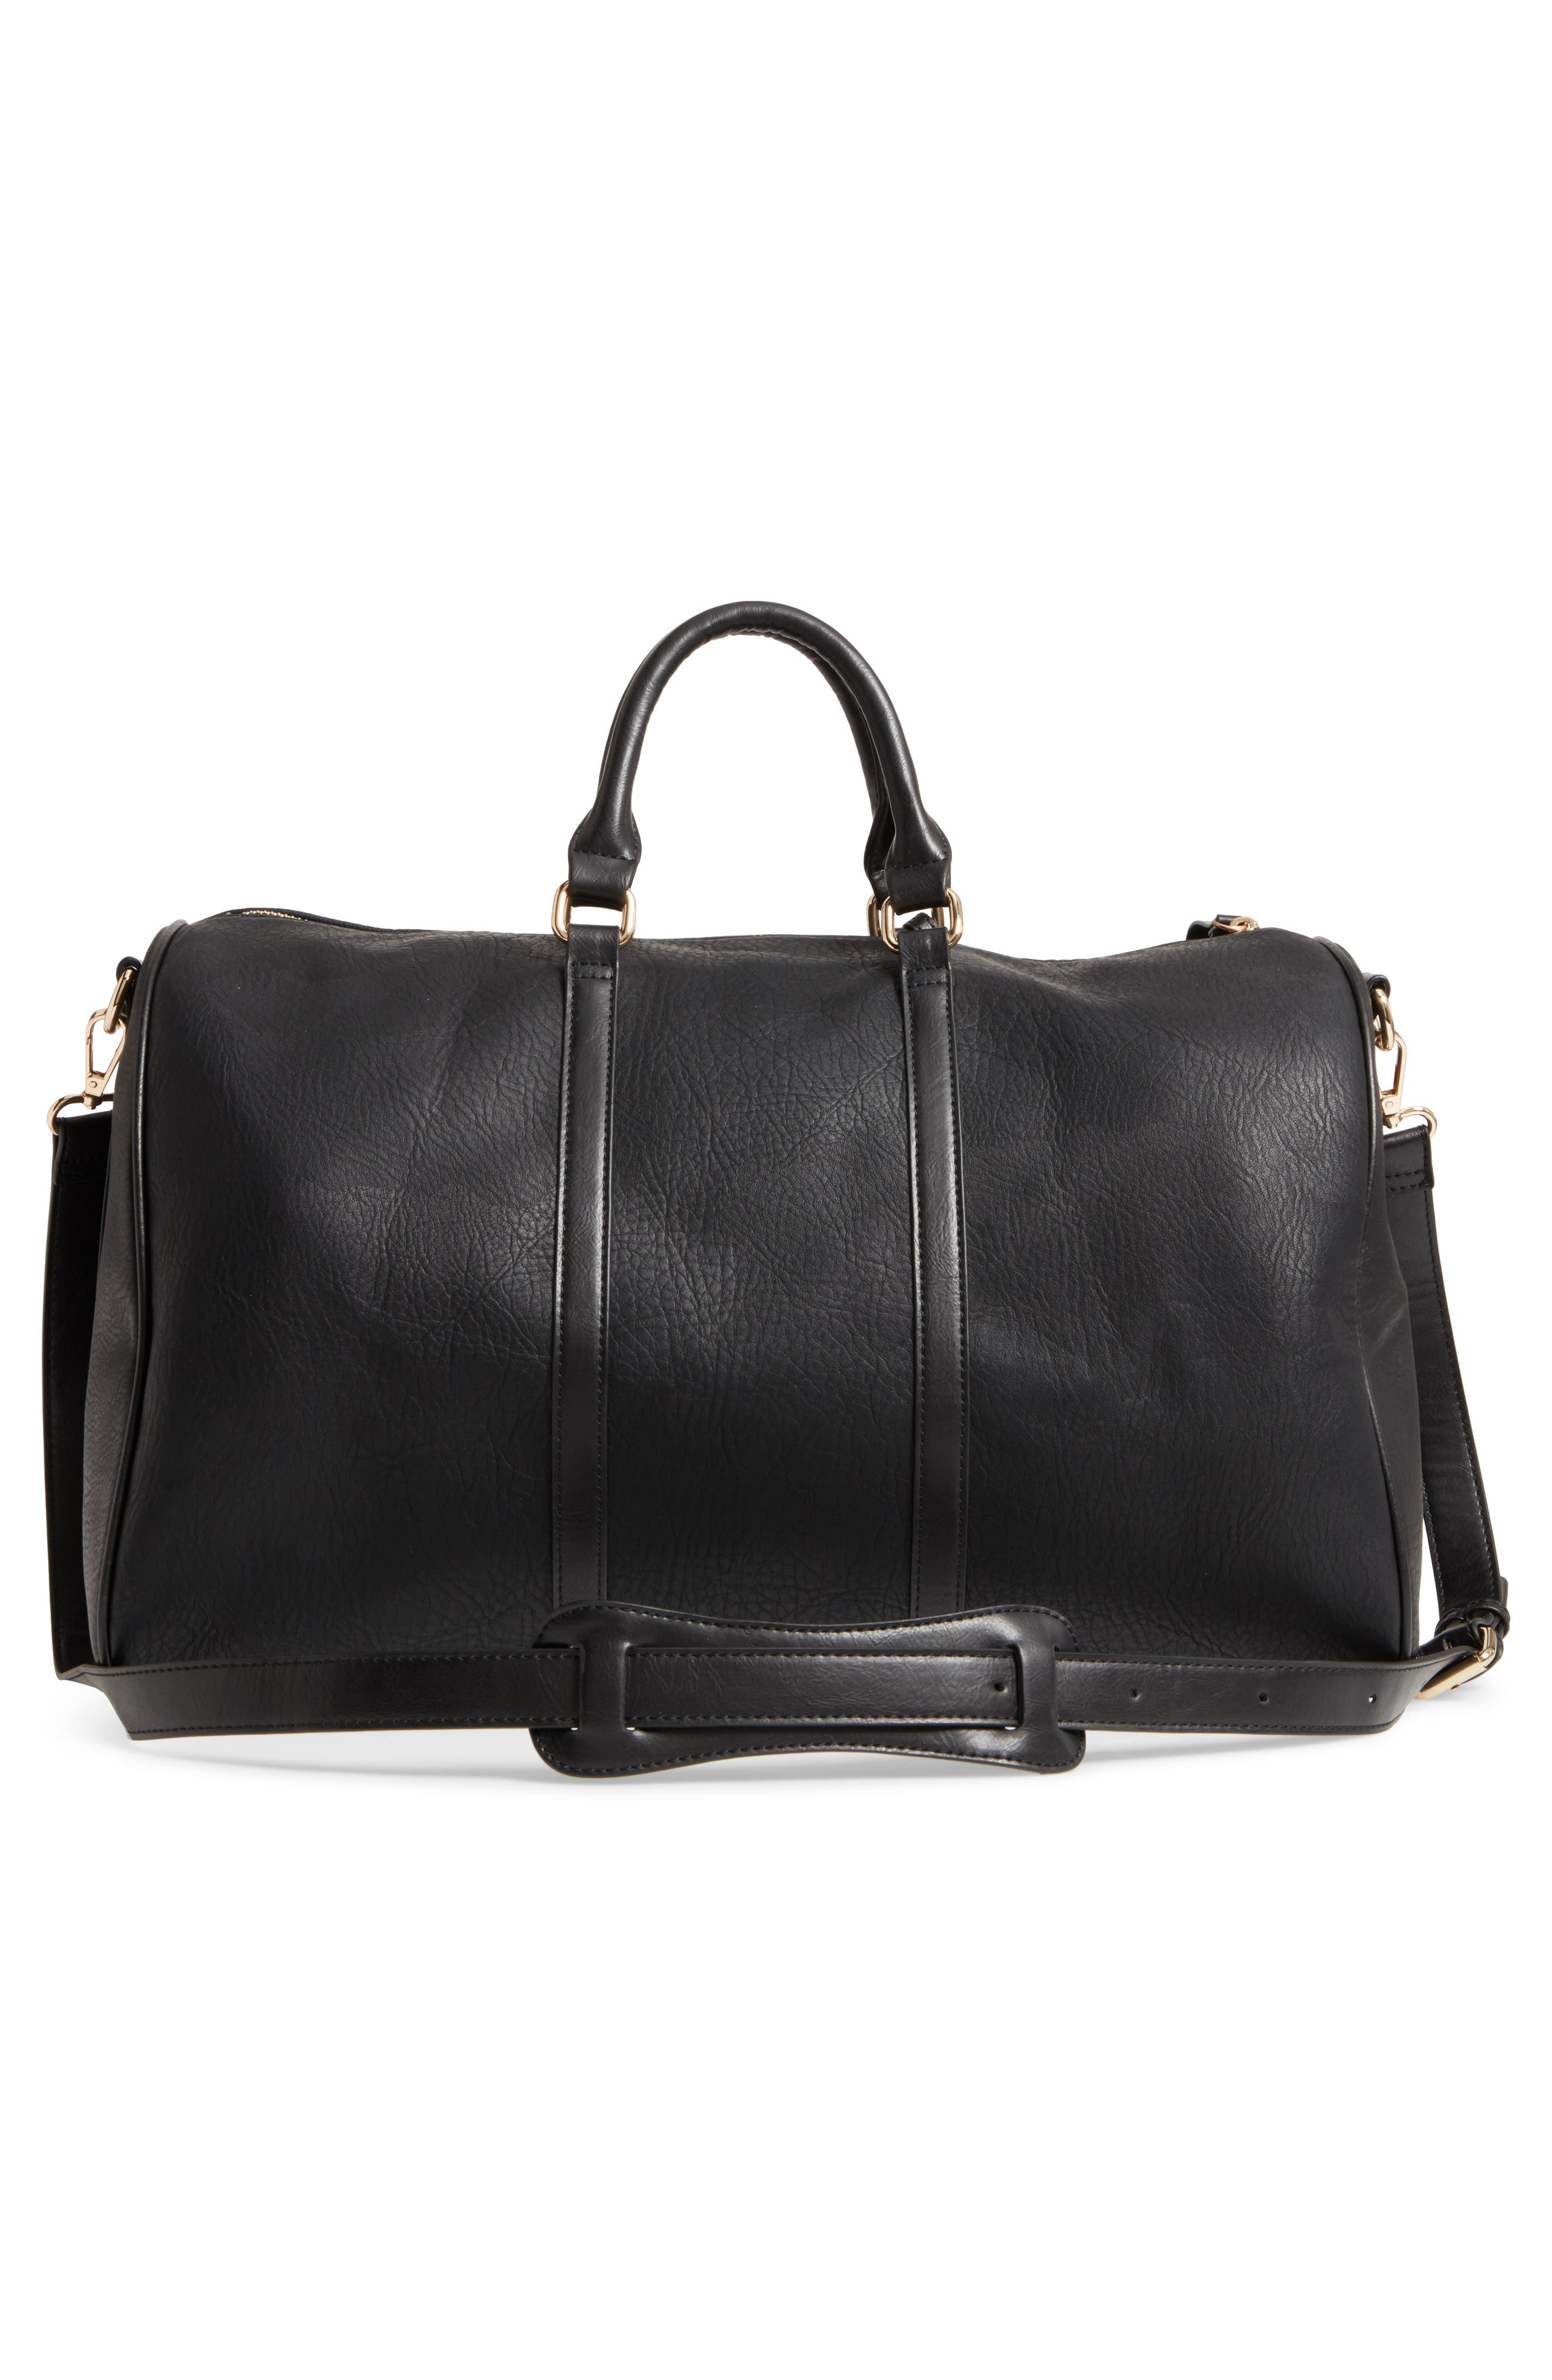 'Cassidy' Faux Leather Duffel Bag,                             Alternate thumbnail 3, color,                             002